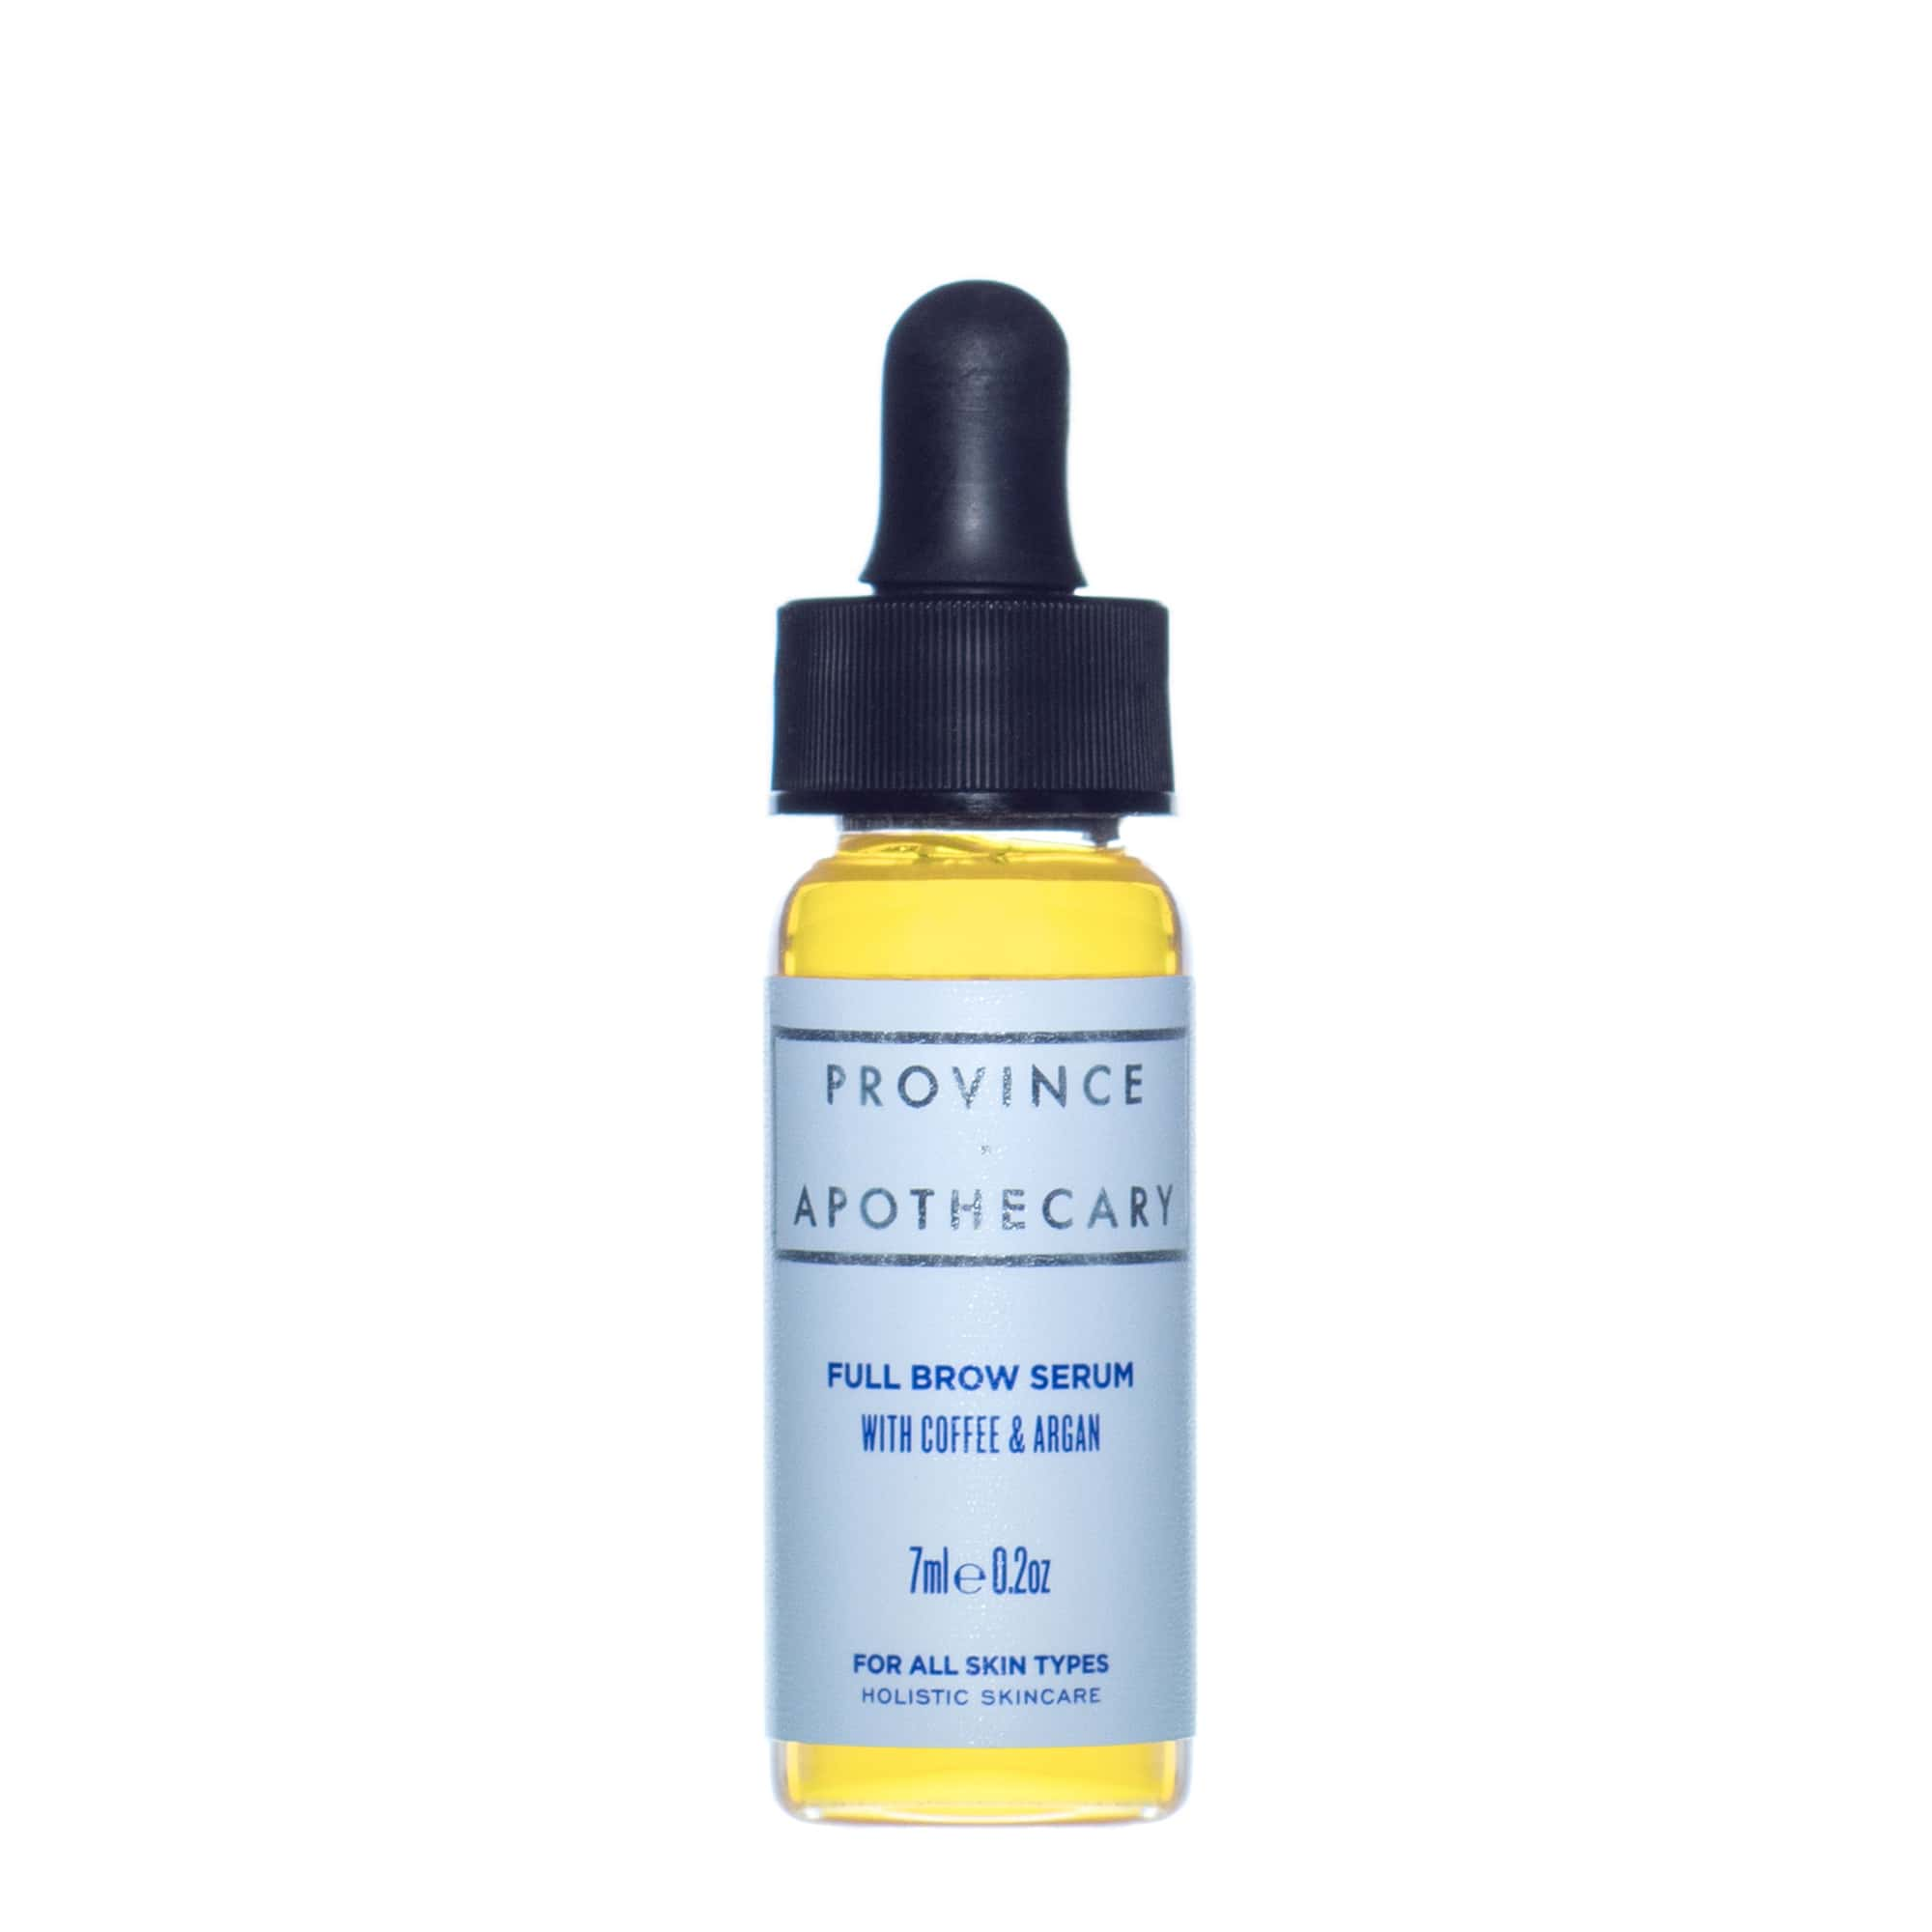 Full Brow Serum in a 7ml dropper bottle - Cladproper.com